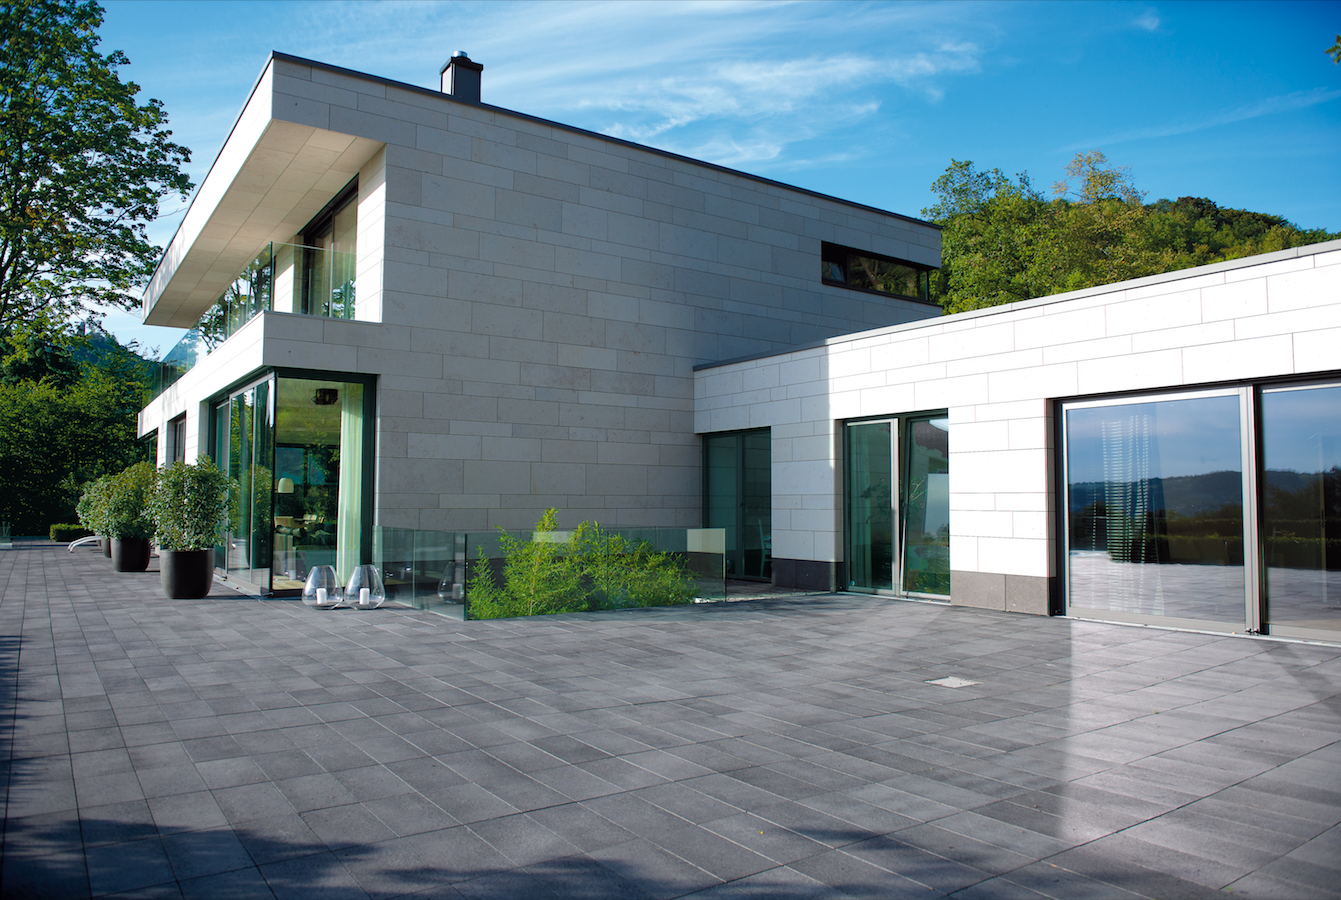 Unilock Wall Units and Paving Stones for Modern Rockland County, NY, Patio Designs